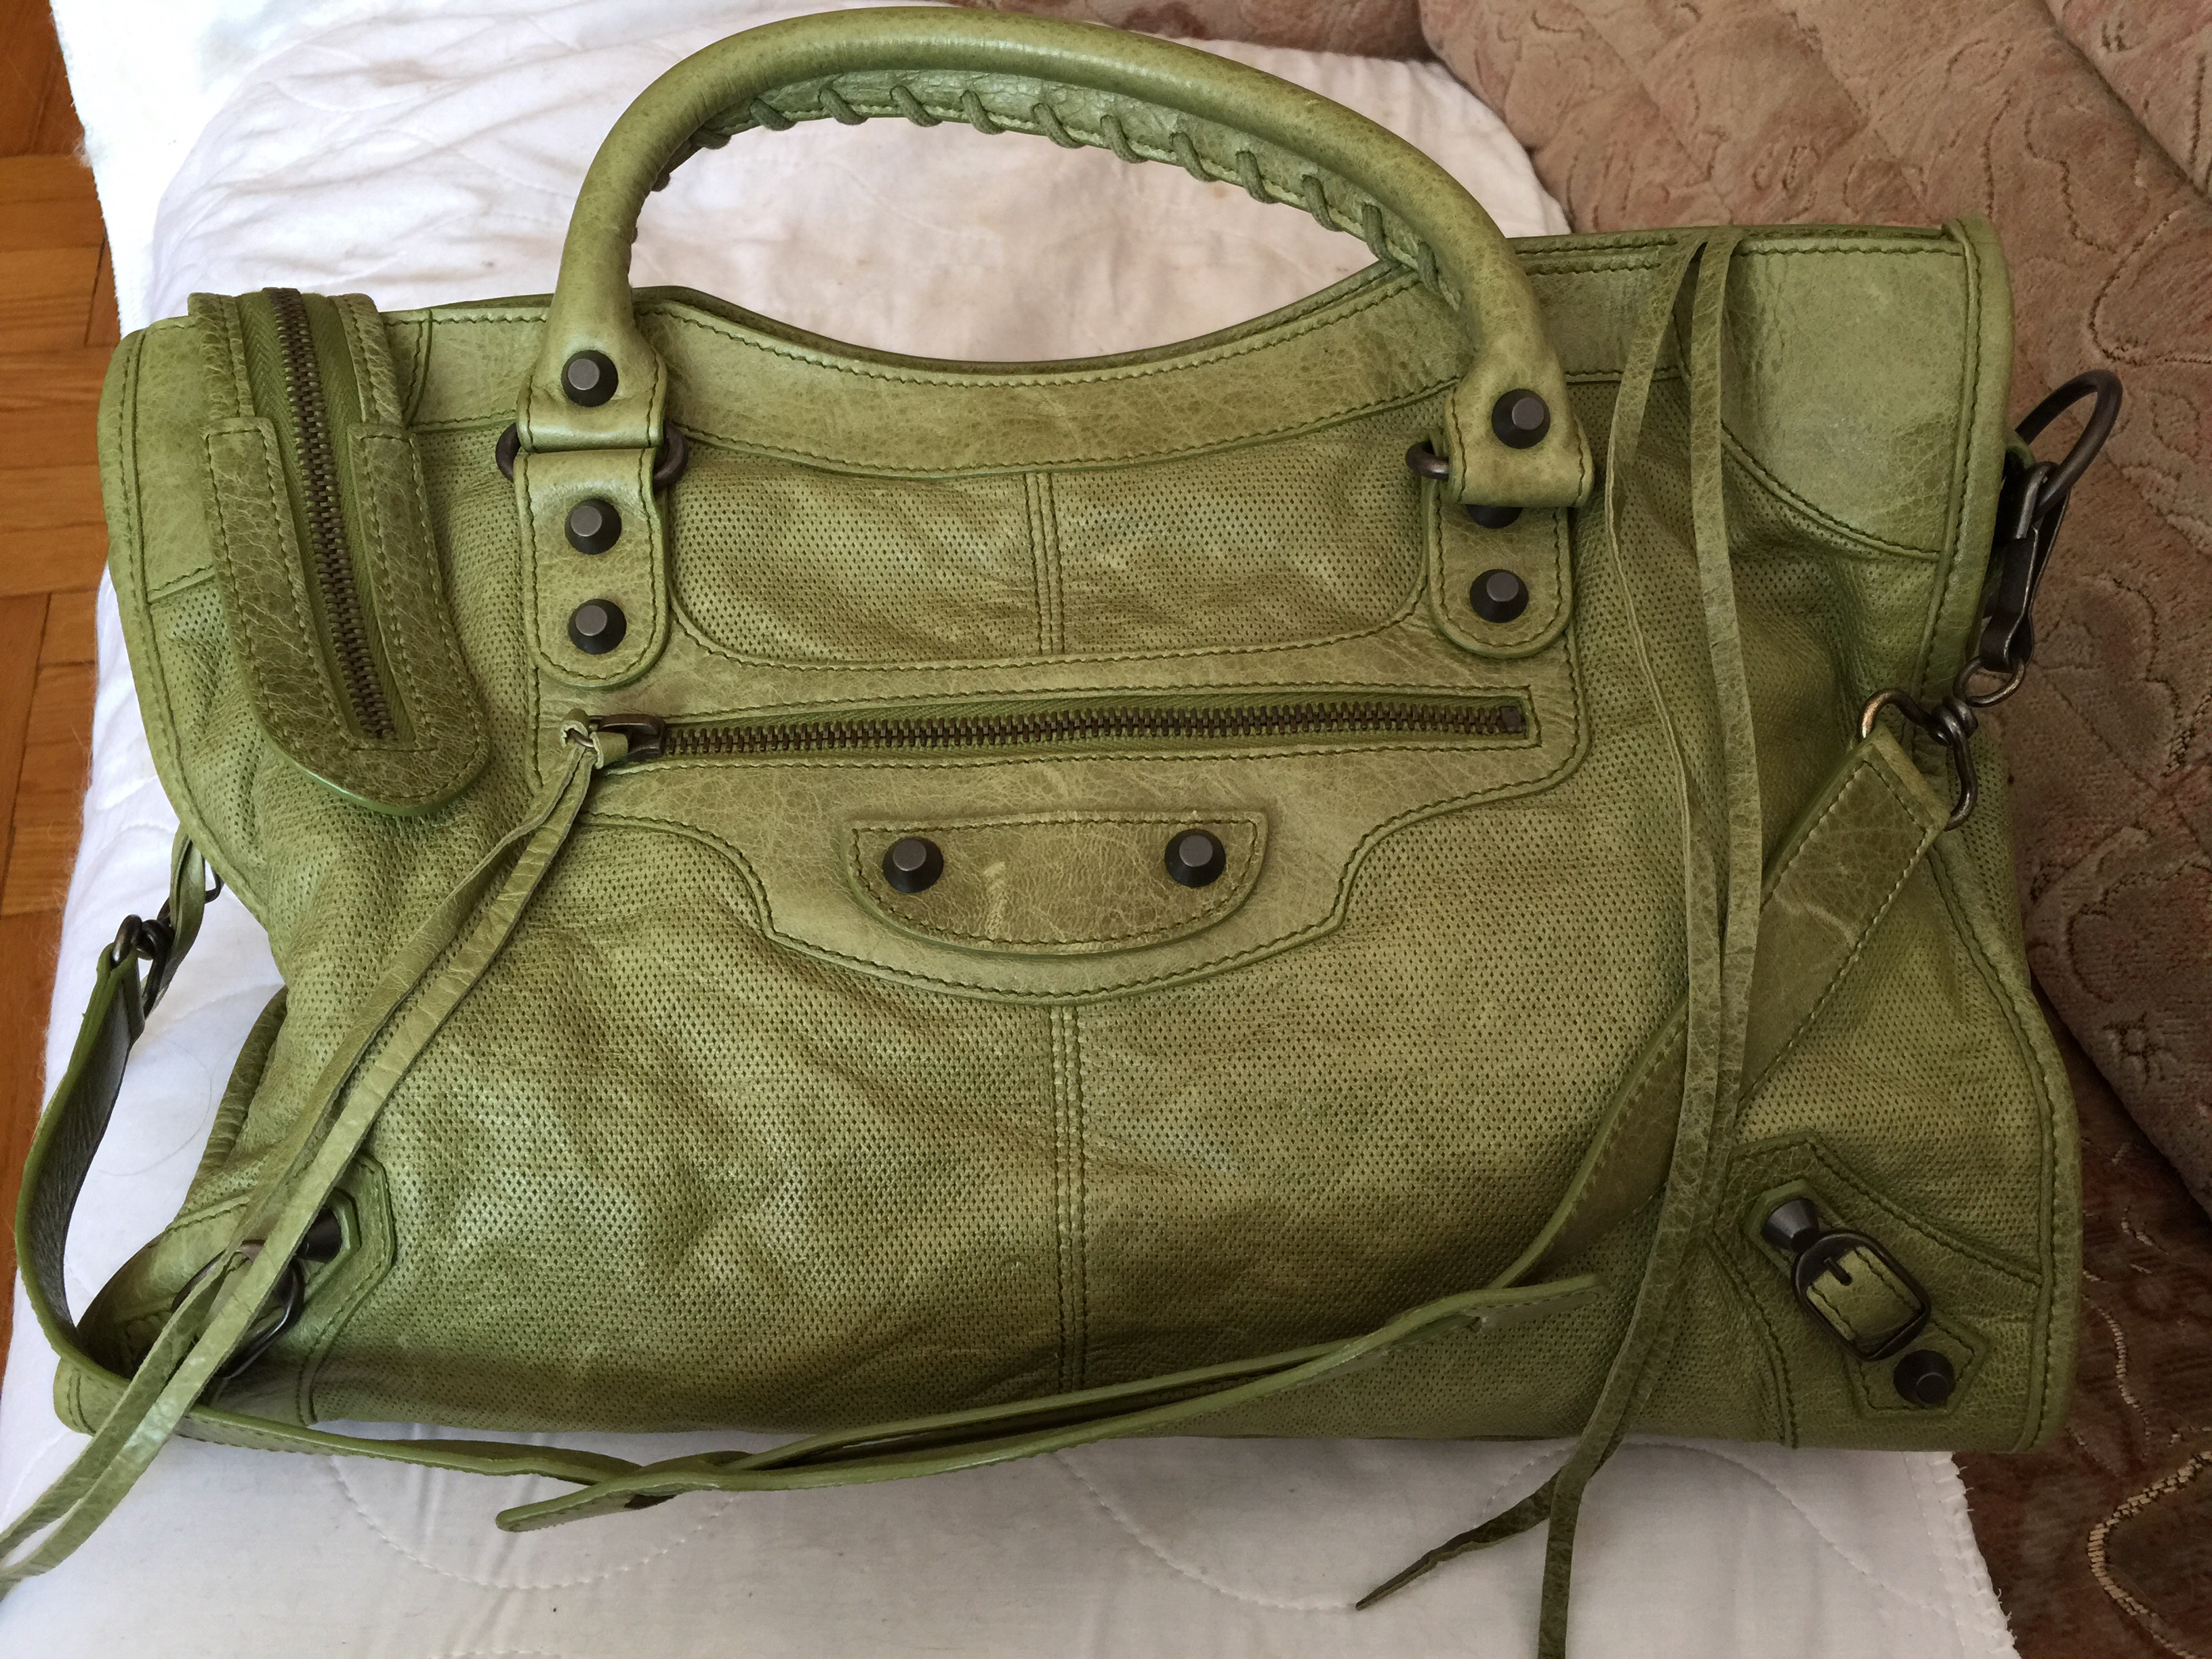 fb5f542d08b Forest Green Balenciaga City bag in perforated lambskin leather ...